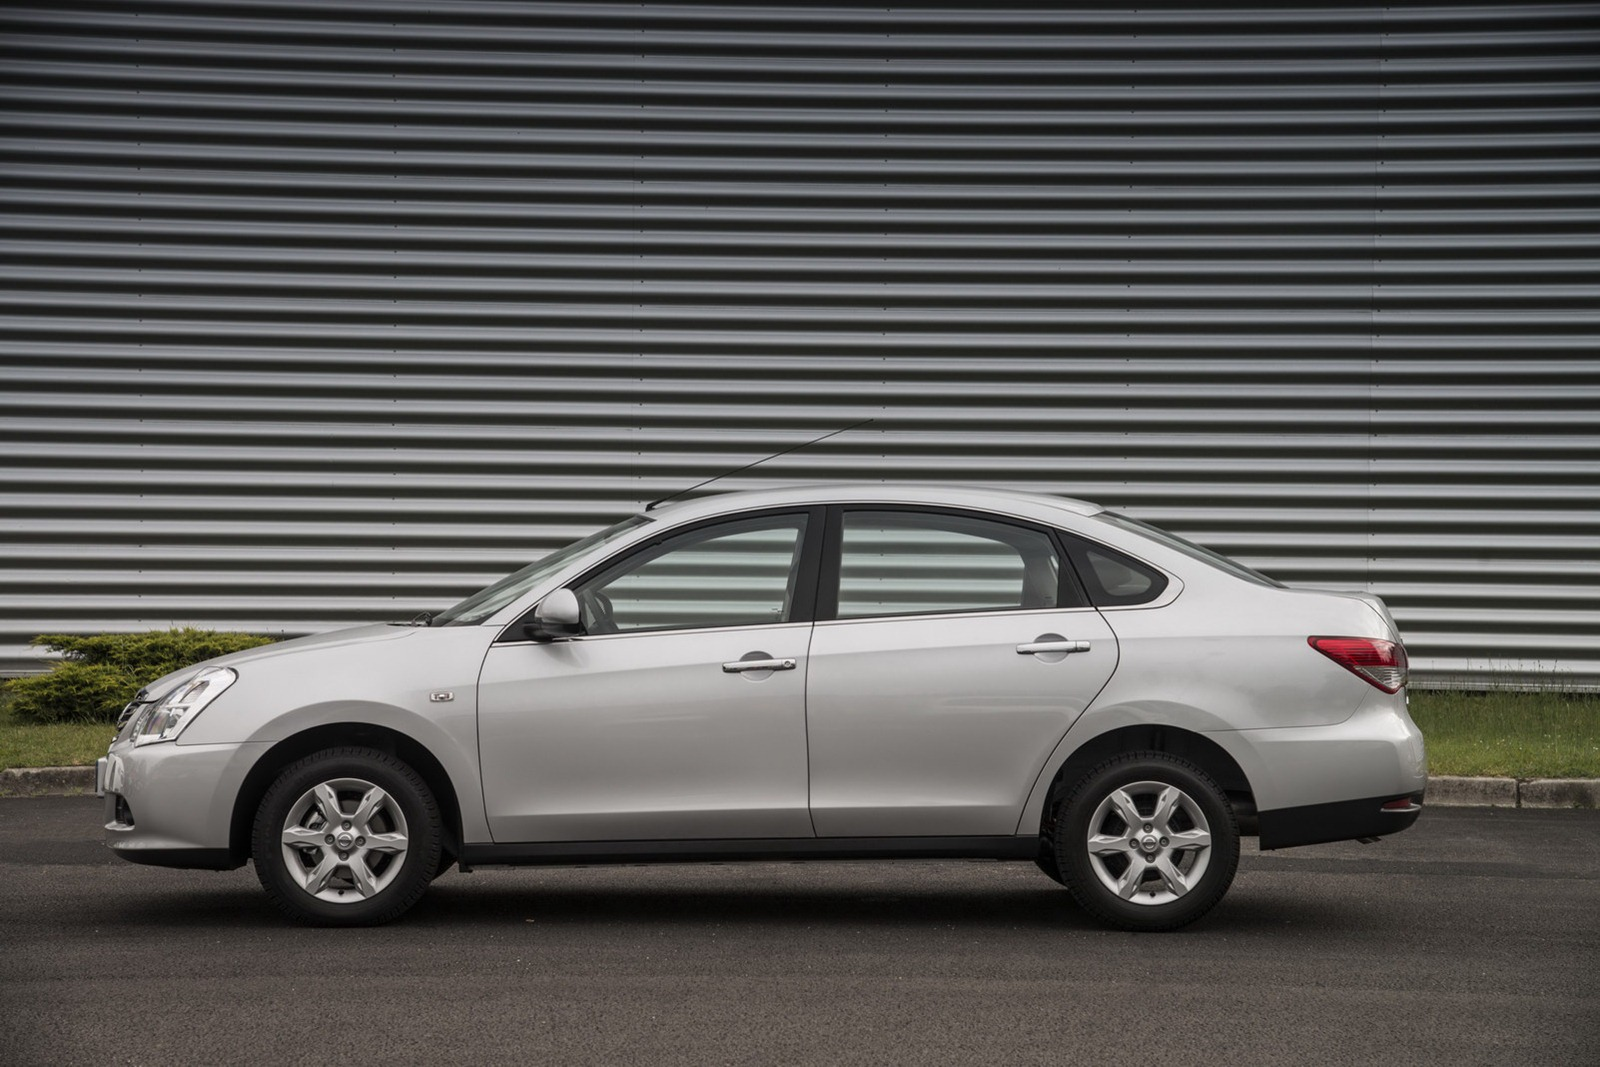 Thread: New Nissan Almera compact sedan unveiled for Russia